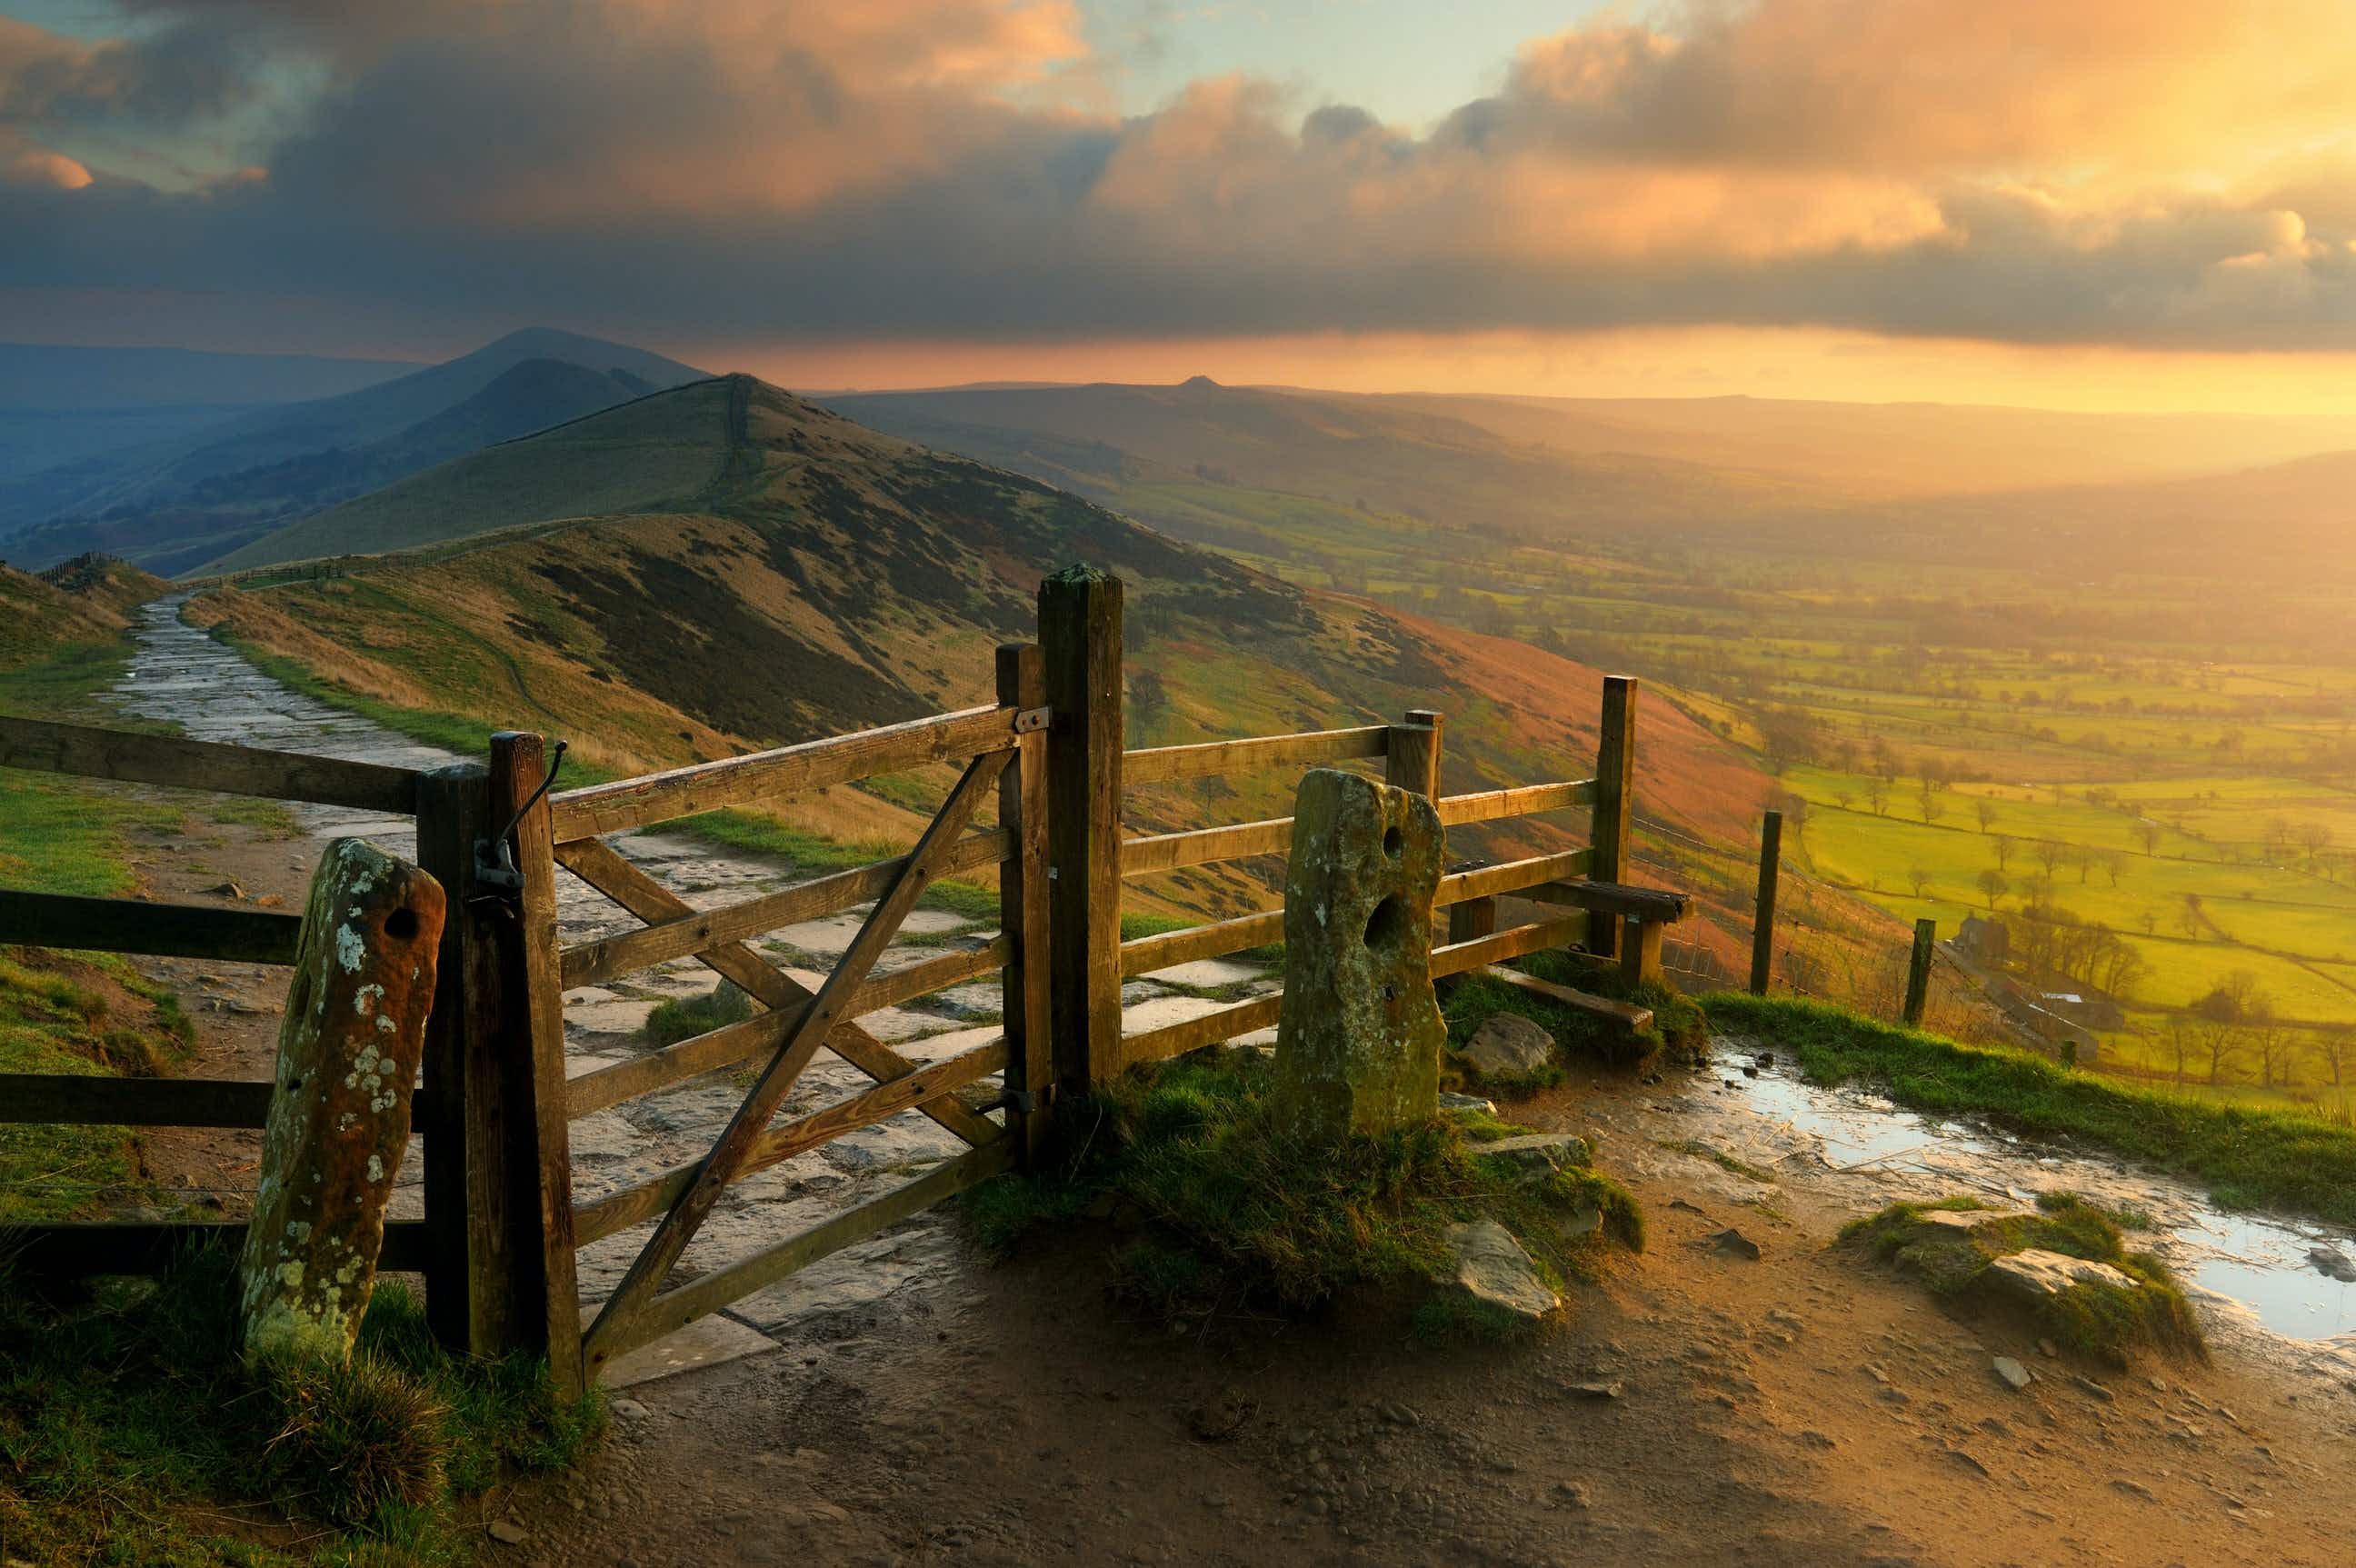 Sunrise over Mam Tor, in the Peak District National Park © Chris Hepburn / Getty Images